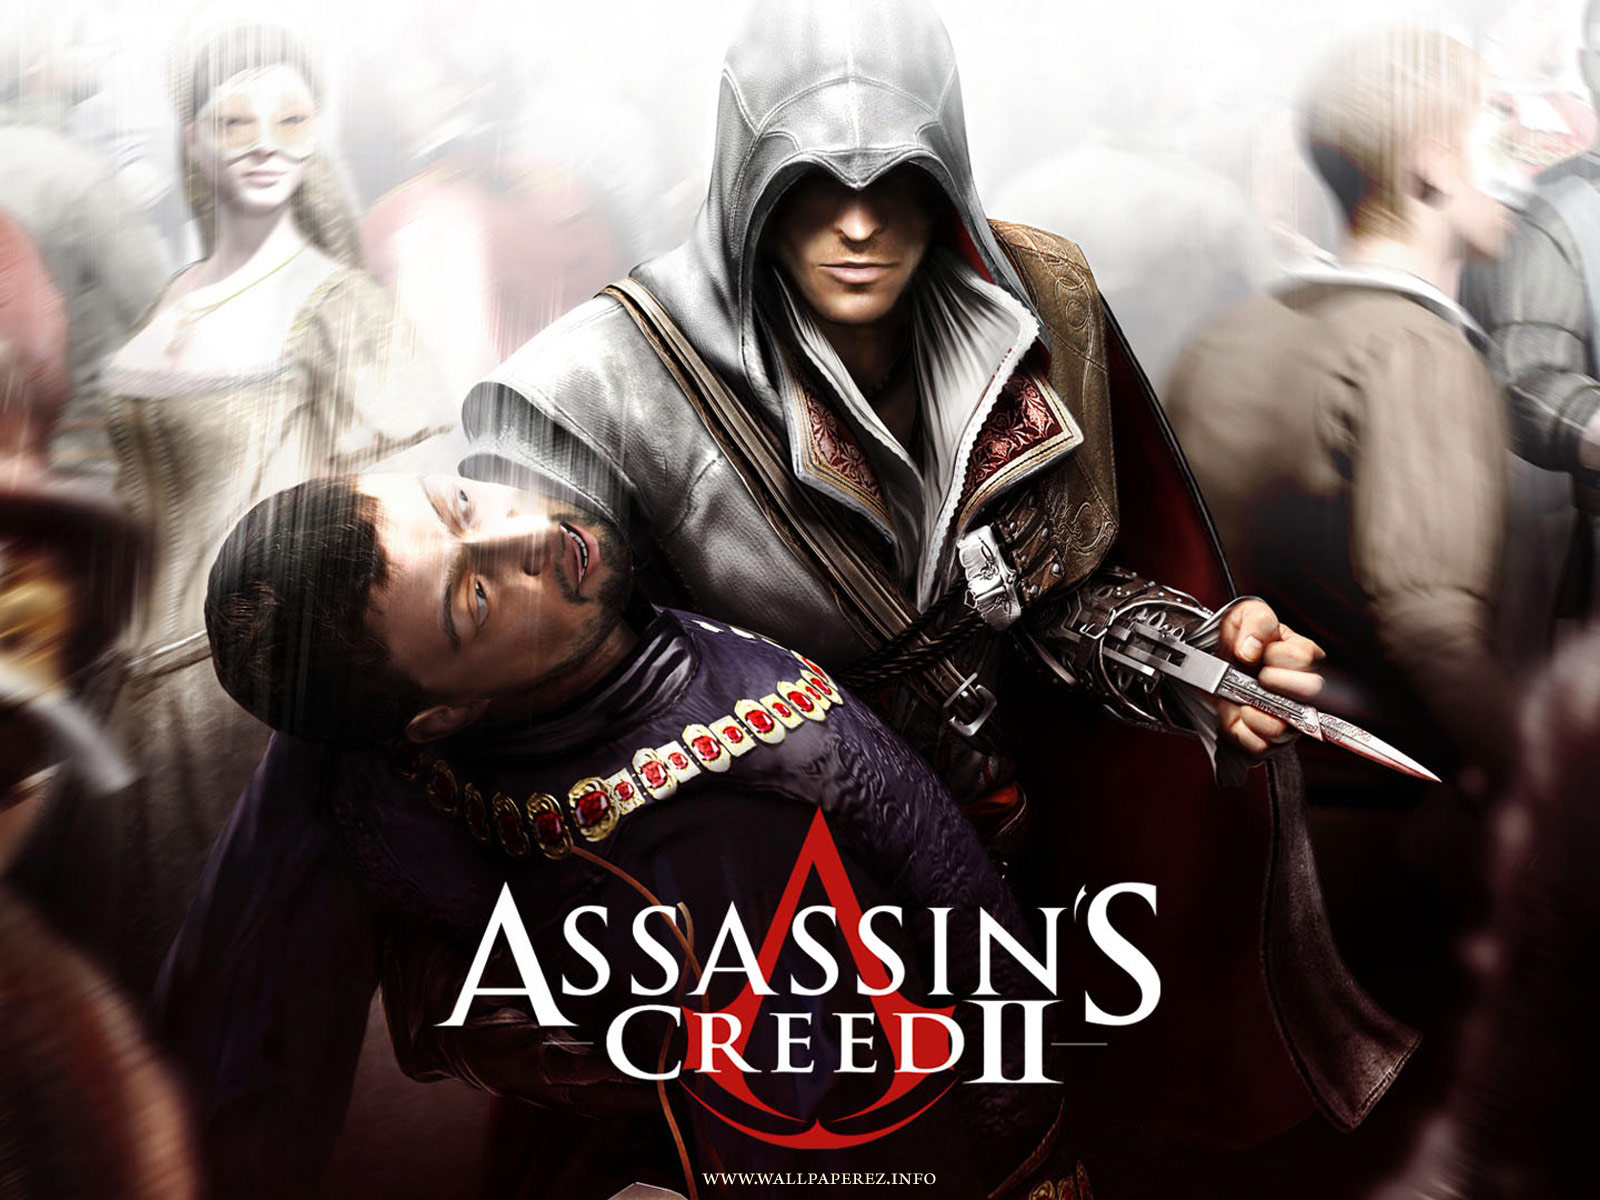 http://1.bp.blogspot.com/-Pr2ZIwOV2aY/TnDWpOQYiYI/AAAAAAAAE6I/0vBPyieQfVI/s1600/assassin%2527s+creed+3+wallpaper+hd+1.jpg